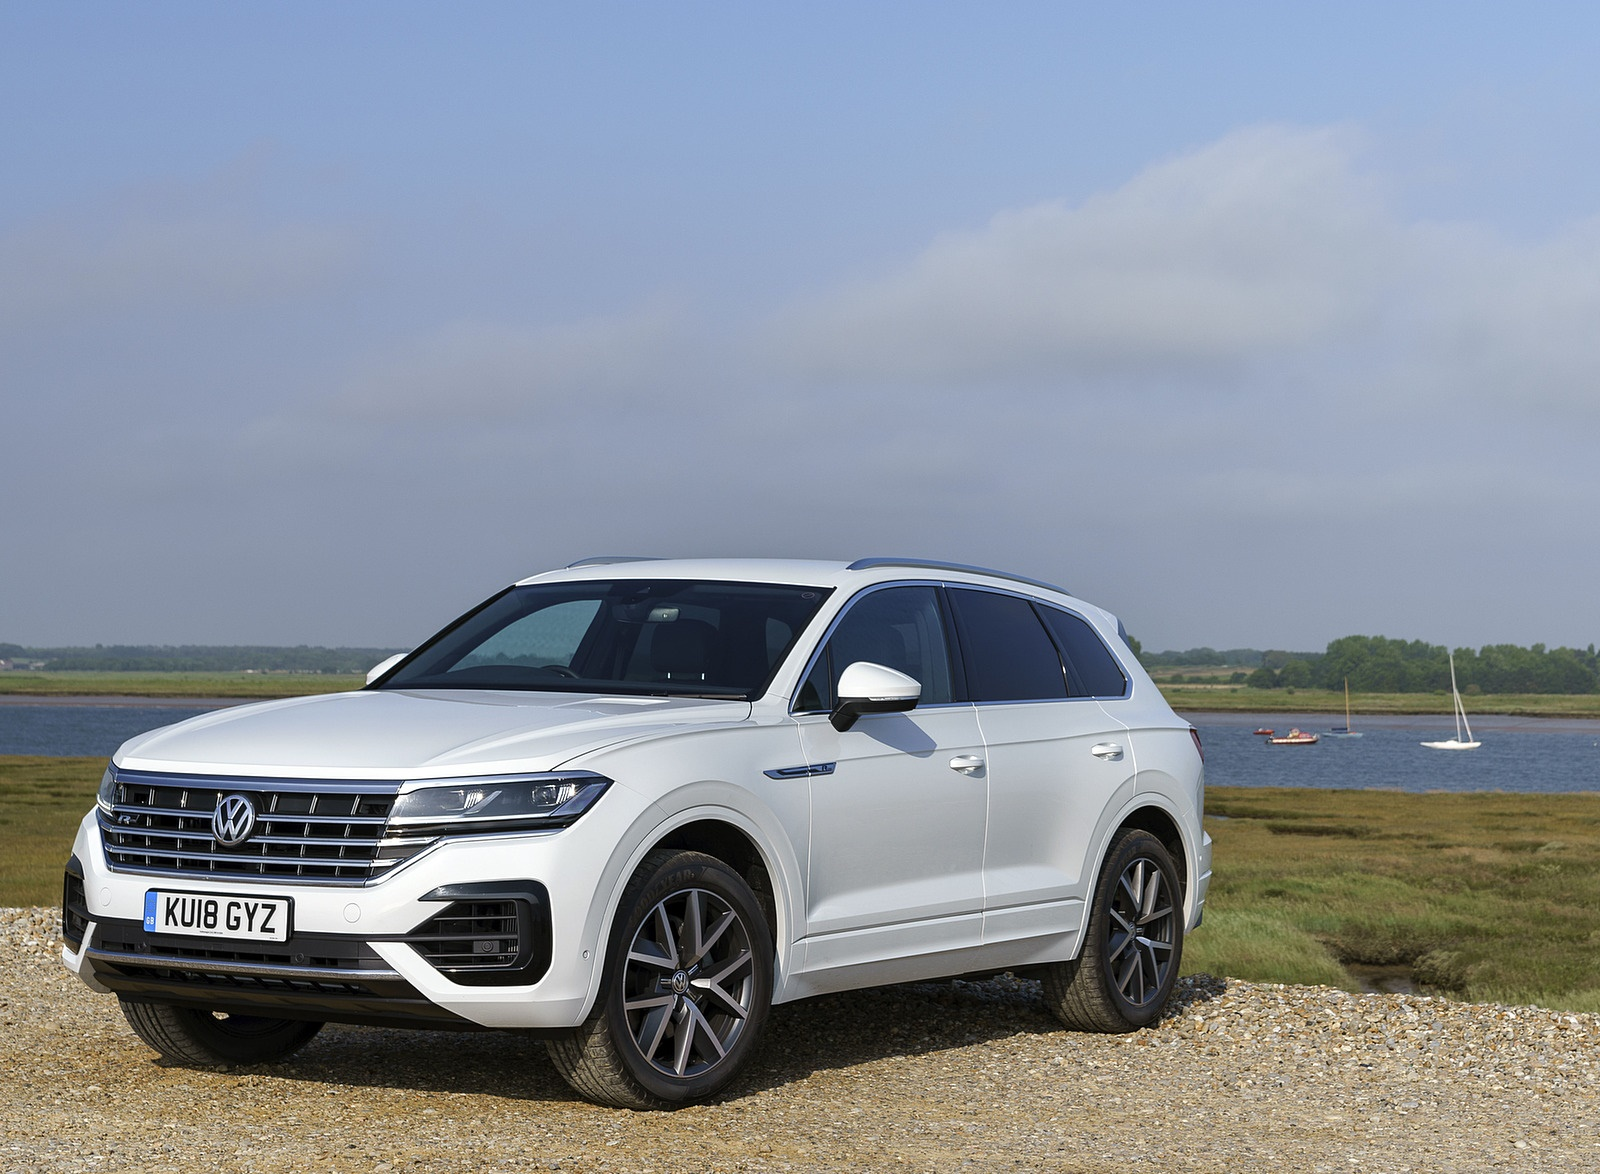 2019 Volkswagen Touareg V6 TDI R-Line (UK-Spec) Front Three-Quarter Wallpapers (5)